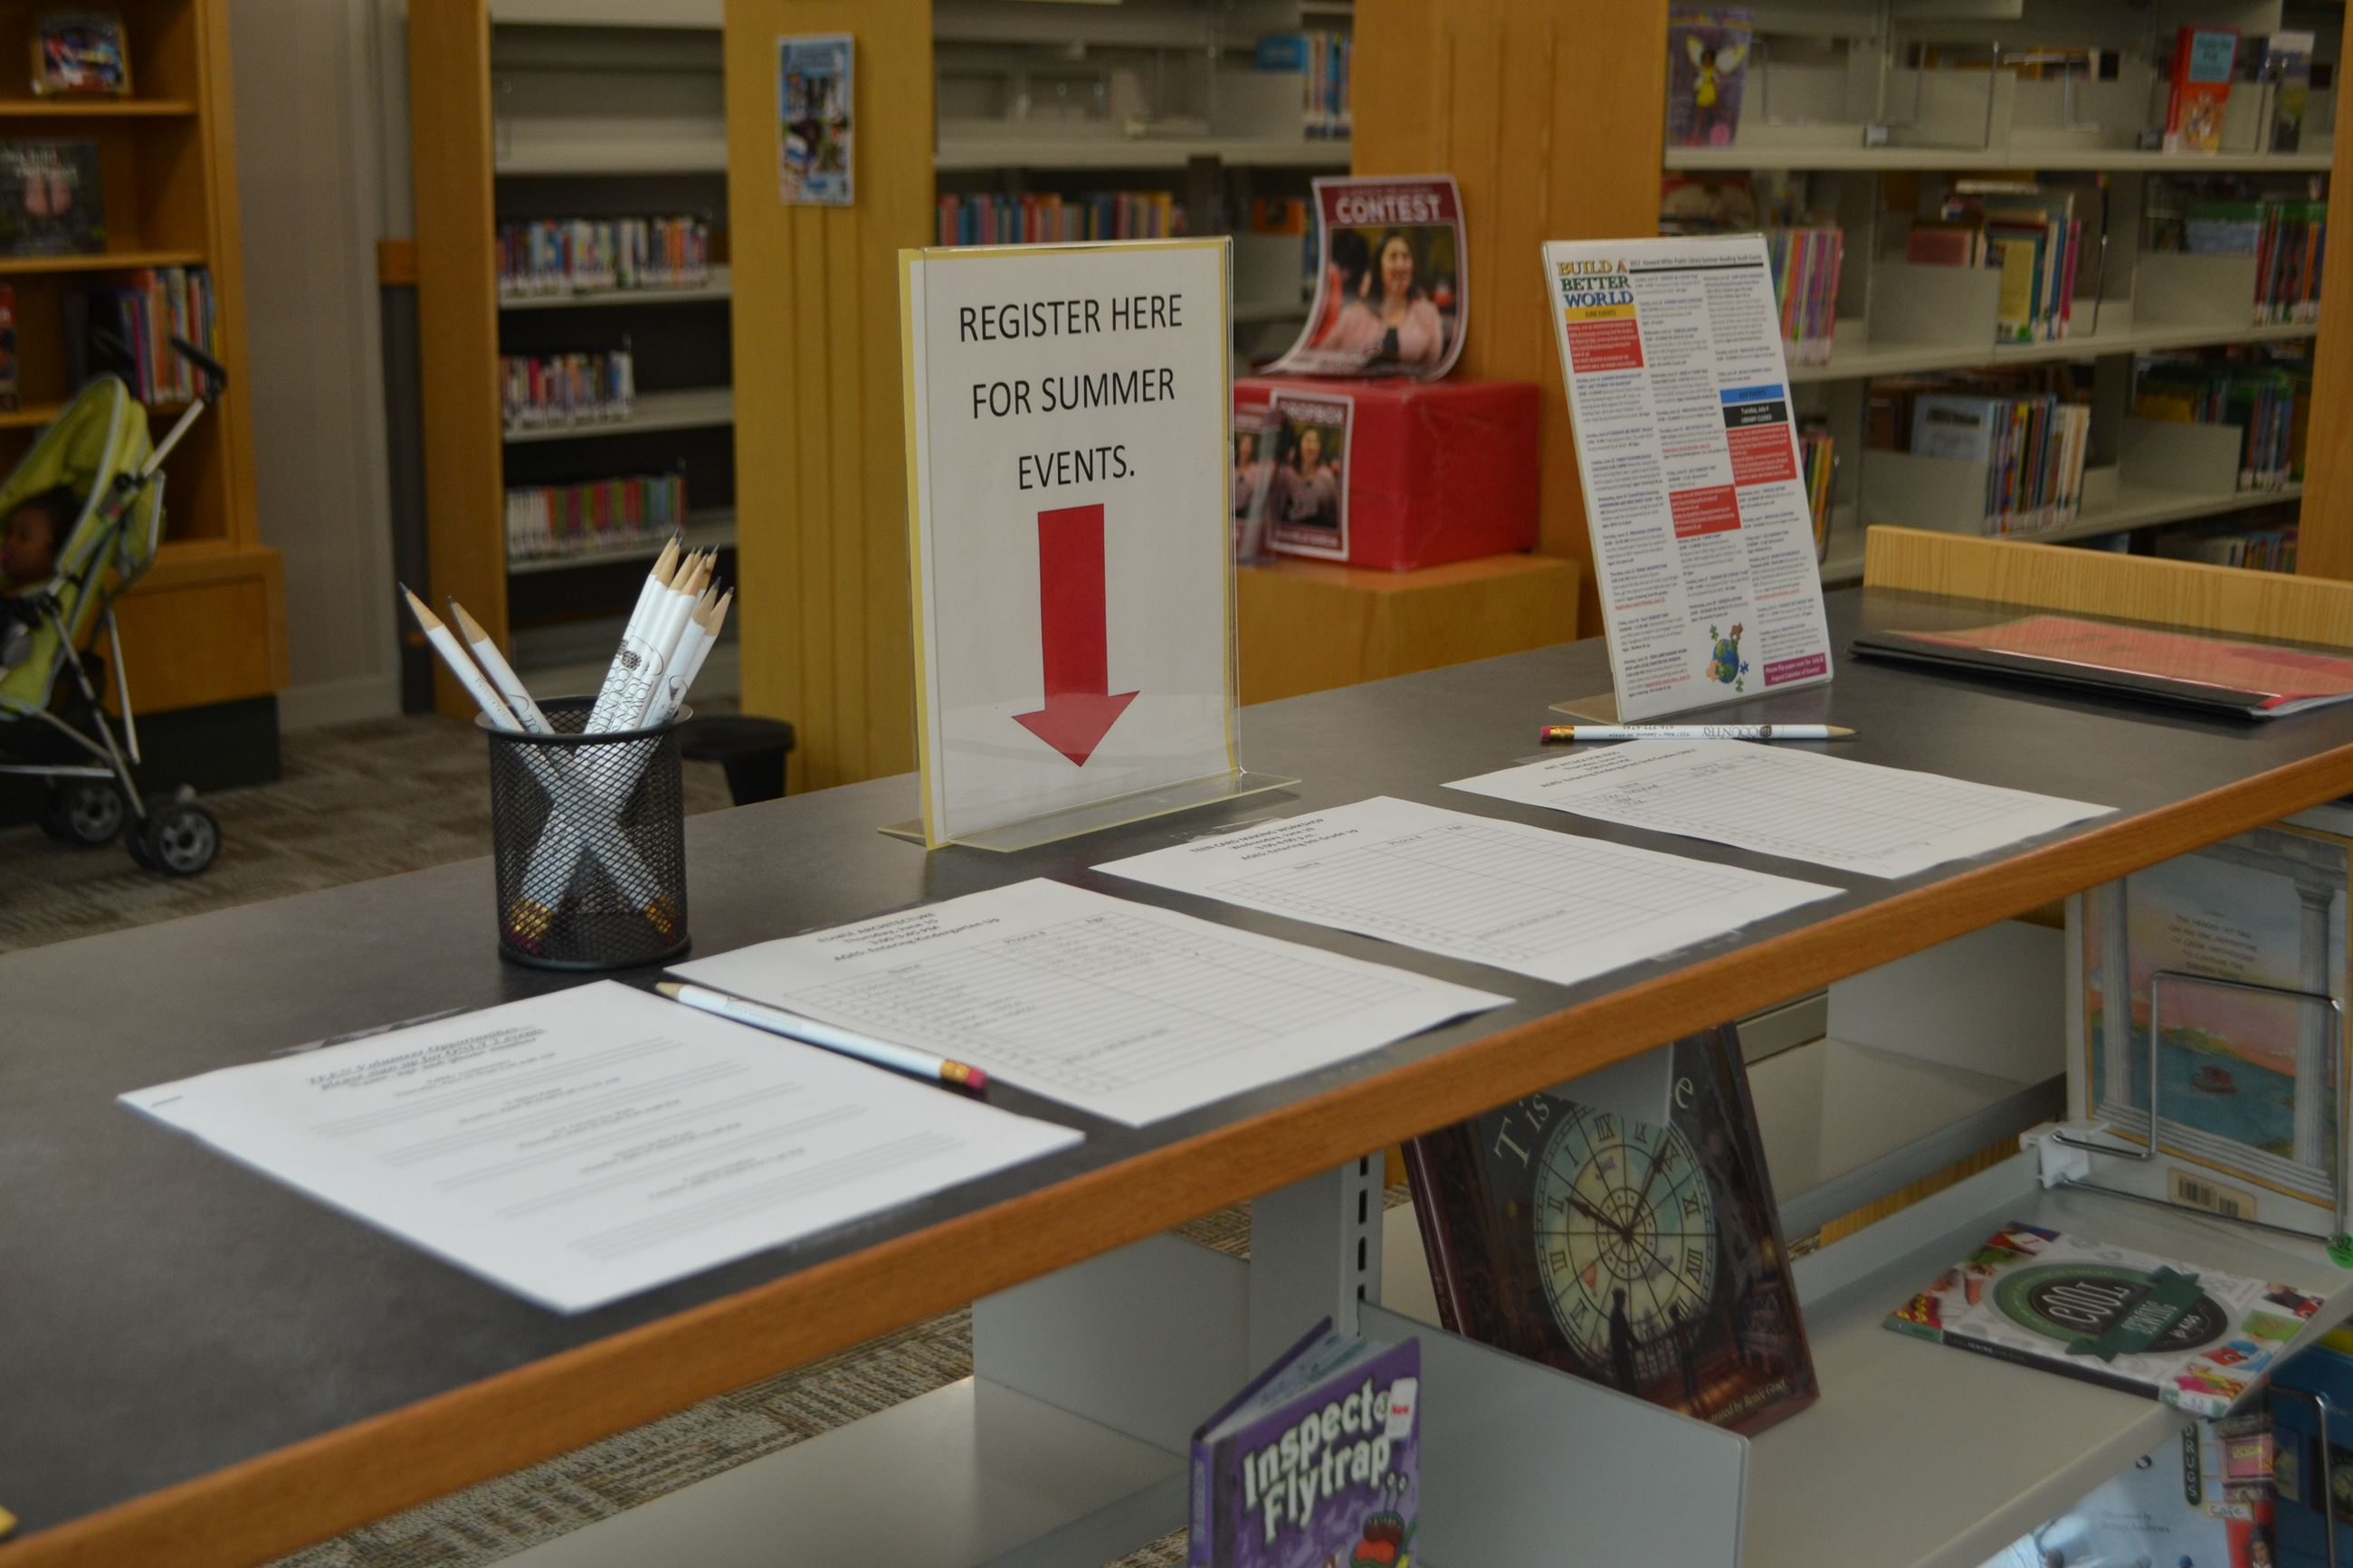 Summer Reading Event Registration Table with sign up pages